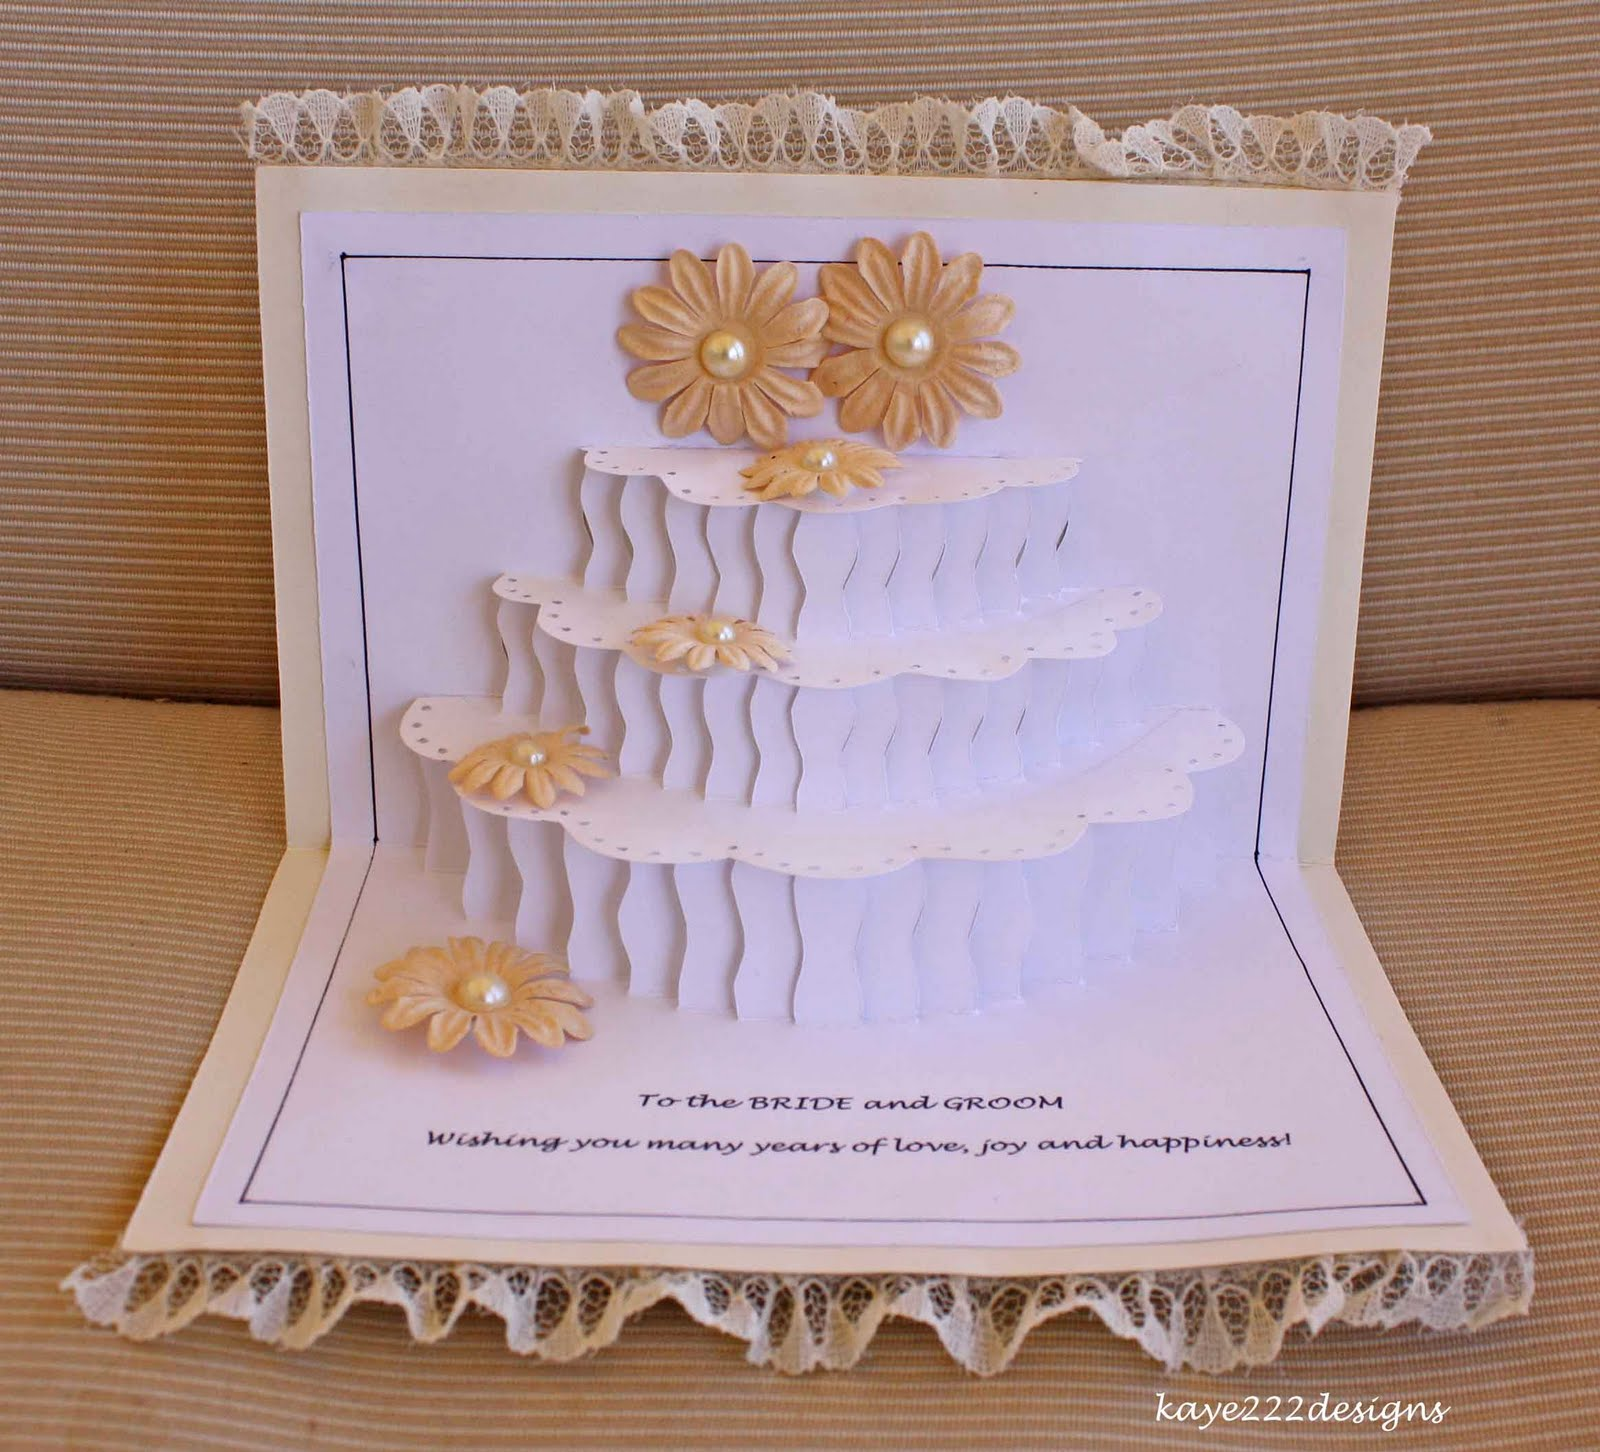 Wedding Cake Pop Up Card Wedding cake pop up card greeting by – Birthday Cake Pop Up Card Template